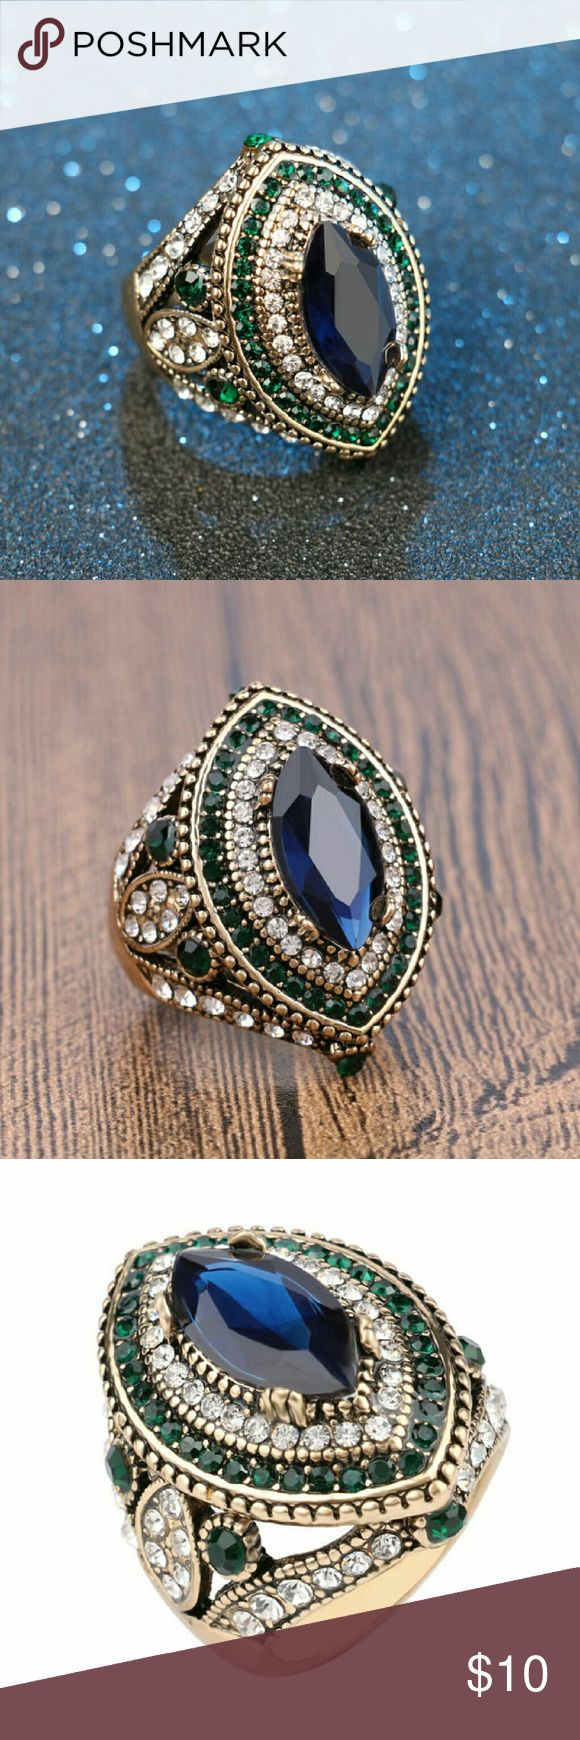 Women's Exotic CZ Sapphire Emerald Ring! Women's Exotic Ancient Turkish Hurrem Style Fashion Ring with Crystal Zirconia Crystals & Sapphire Resins  A beautiful fashion ring that is suitable for daily wear, gifting purposes, or for evenings!  Sizes available: 7, 8, 9, or 10 Please let us know size after placing order, thanks!  IMPORTANT, Pls Note:  If ring size are sold in our real store in NYC, this means it'll not be available on here as well.. We will refund transaction in these cases…